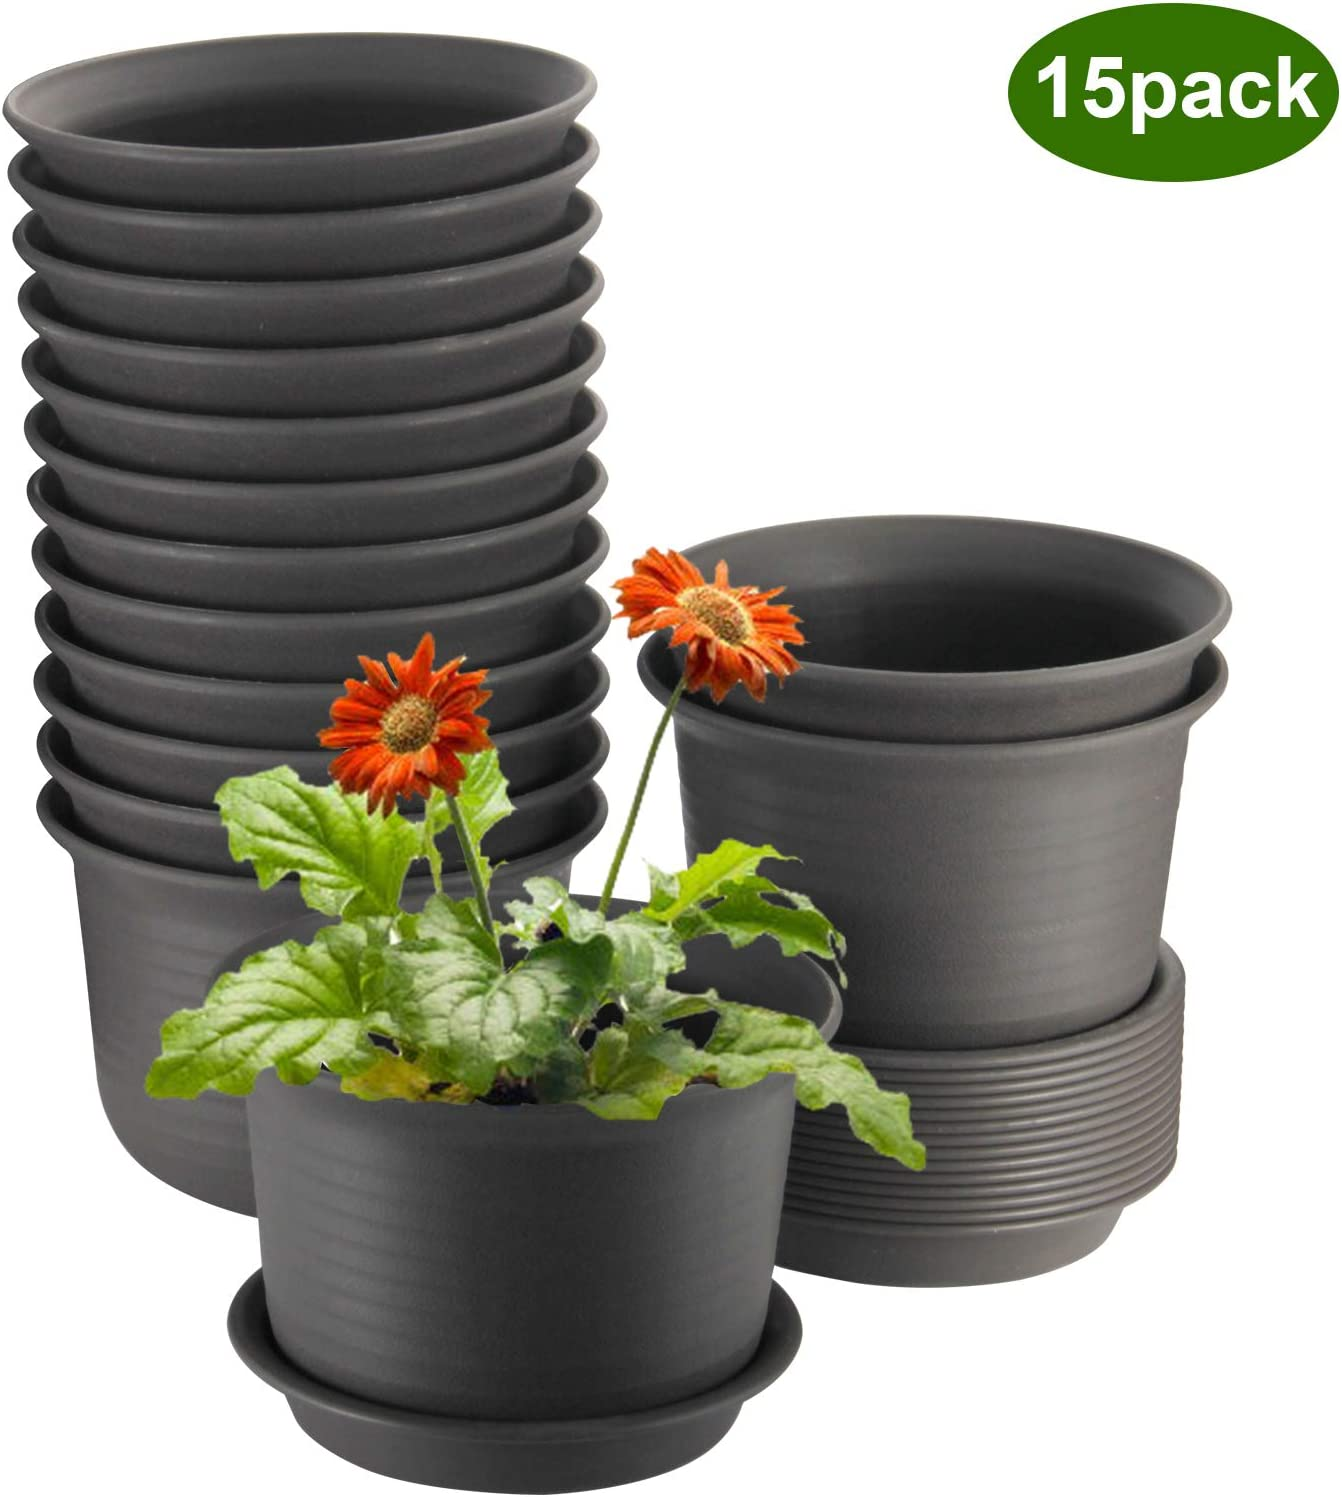 ZOUTOG Flower Pots 6 inch Plastic Planters with Drainage Hole and Tray, Pack of 15 - Plants Not Included, Brown